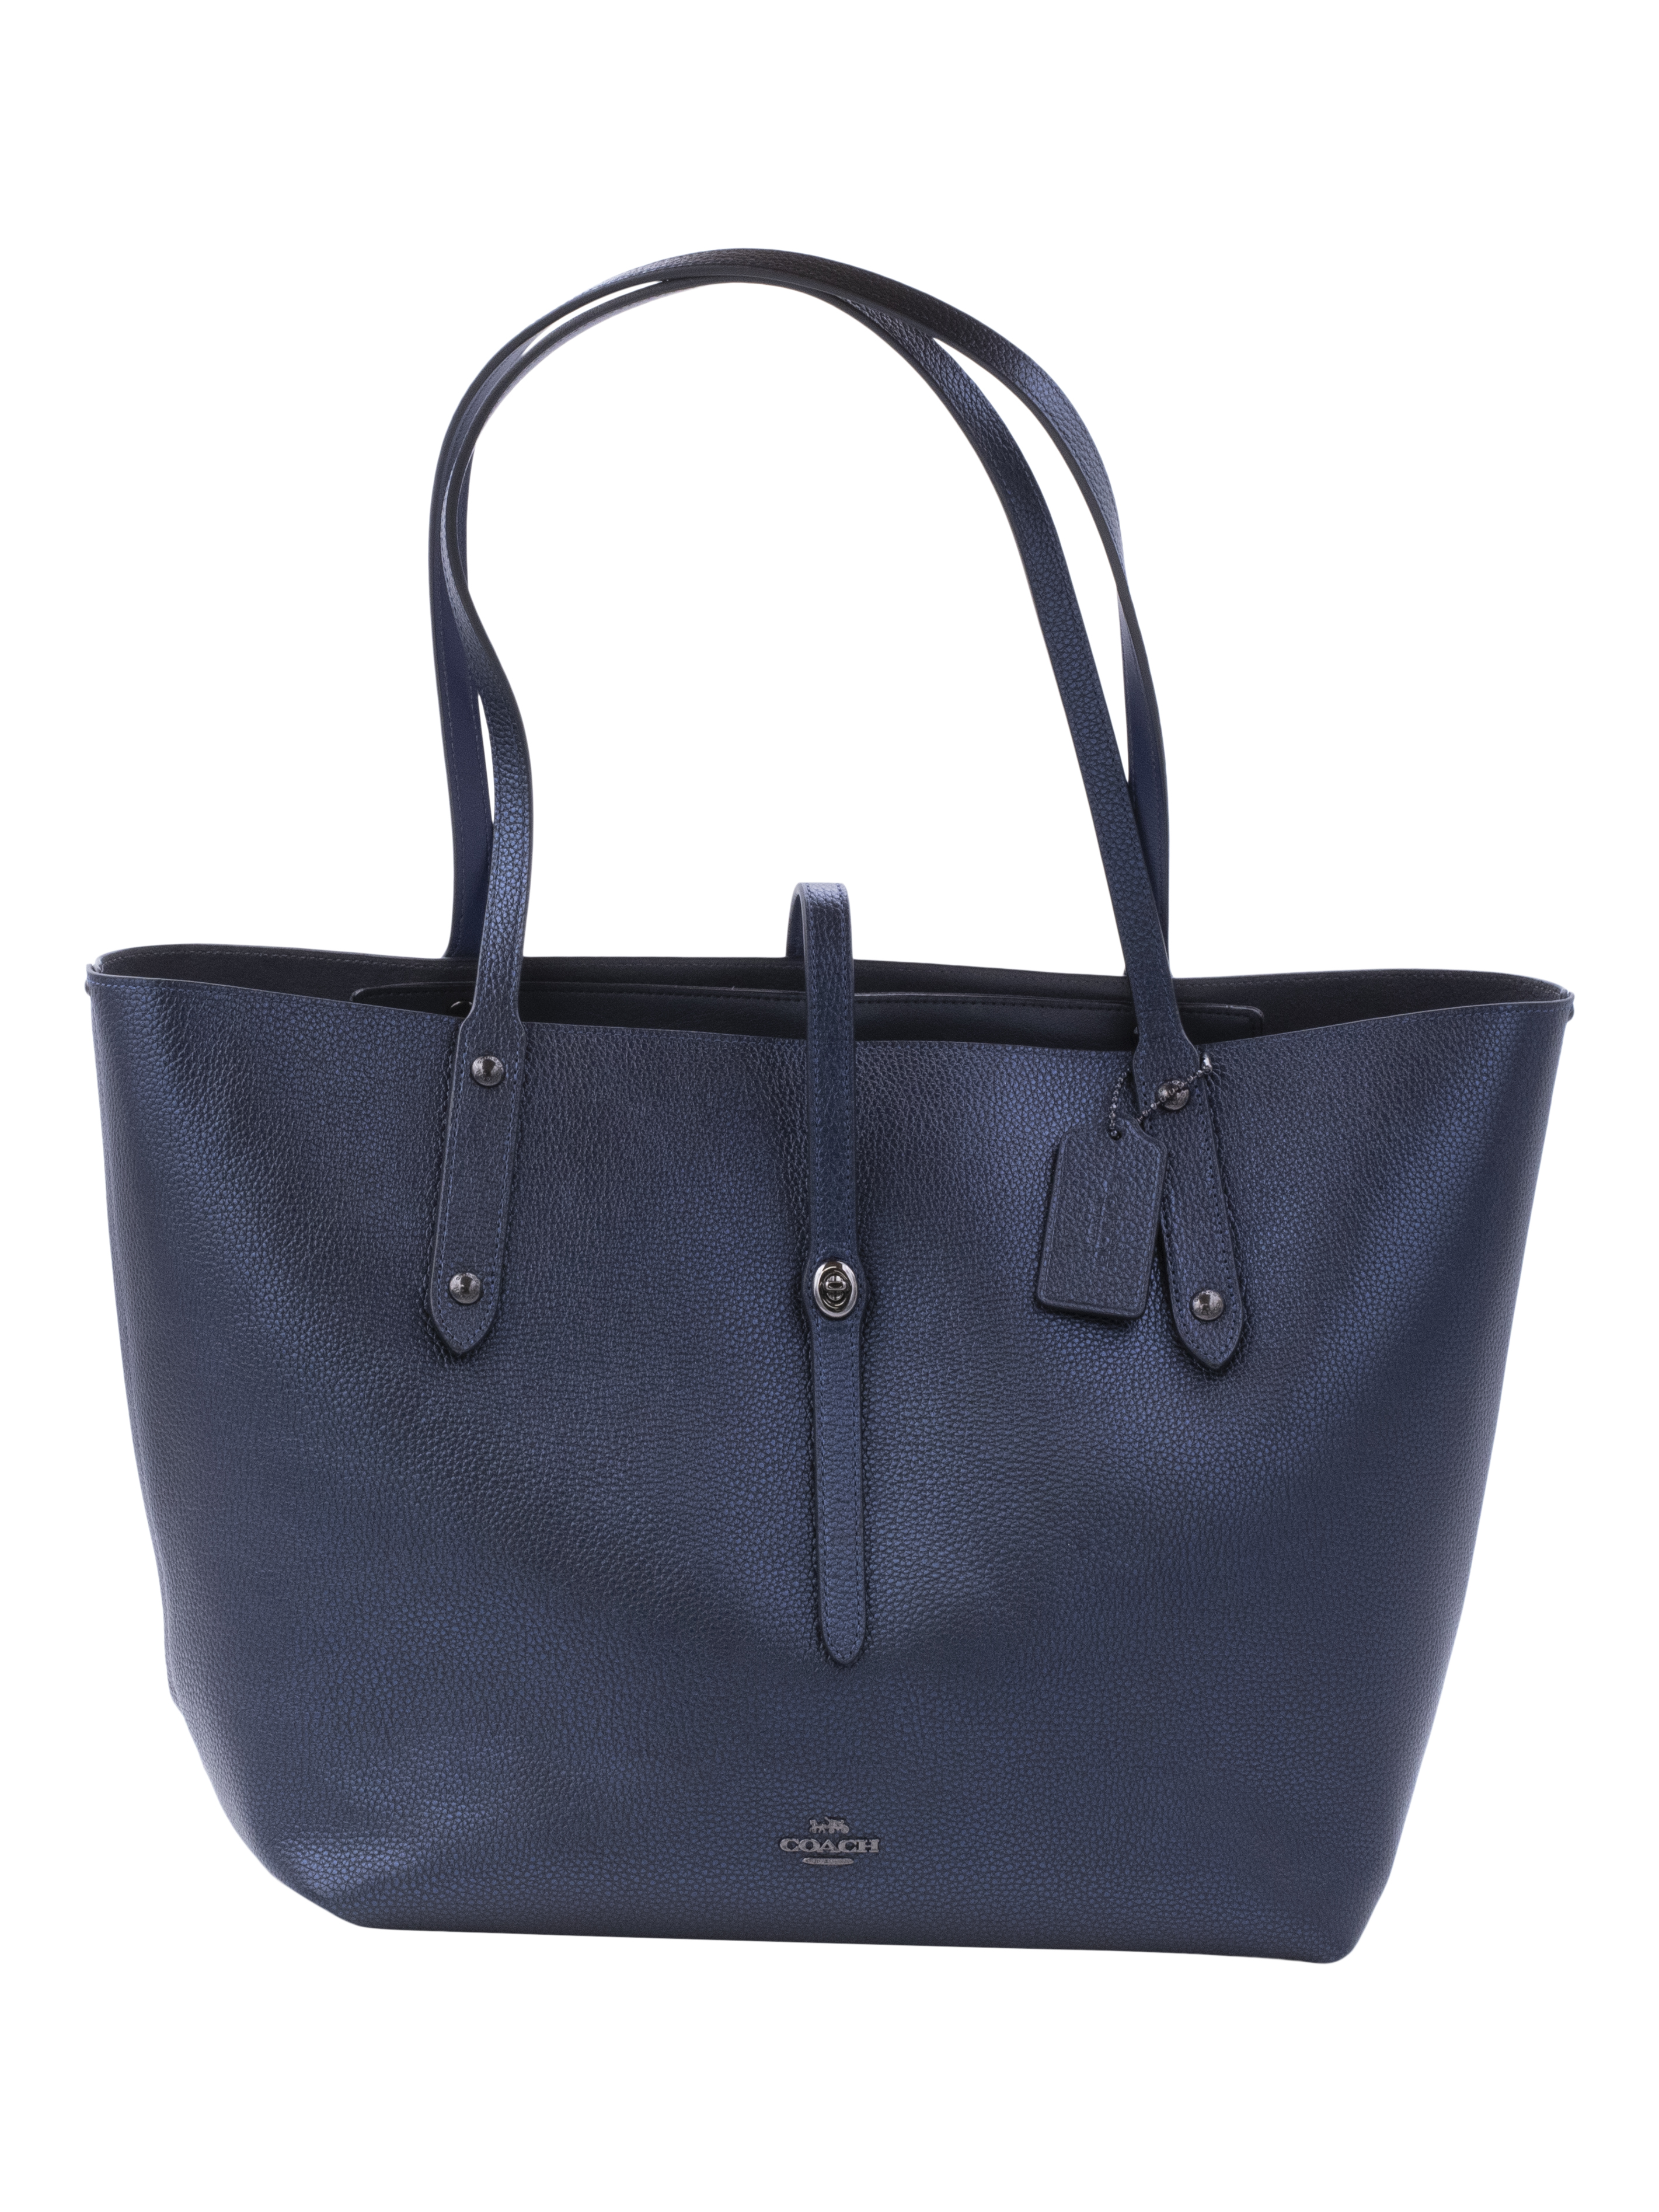 COACH Womens Metallic Leather Market Tote Gunmetal/Metallic Blue